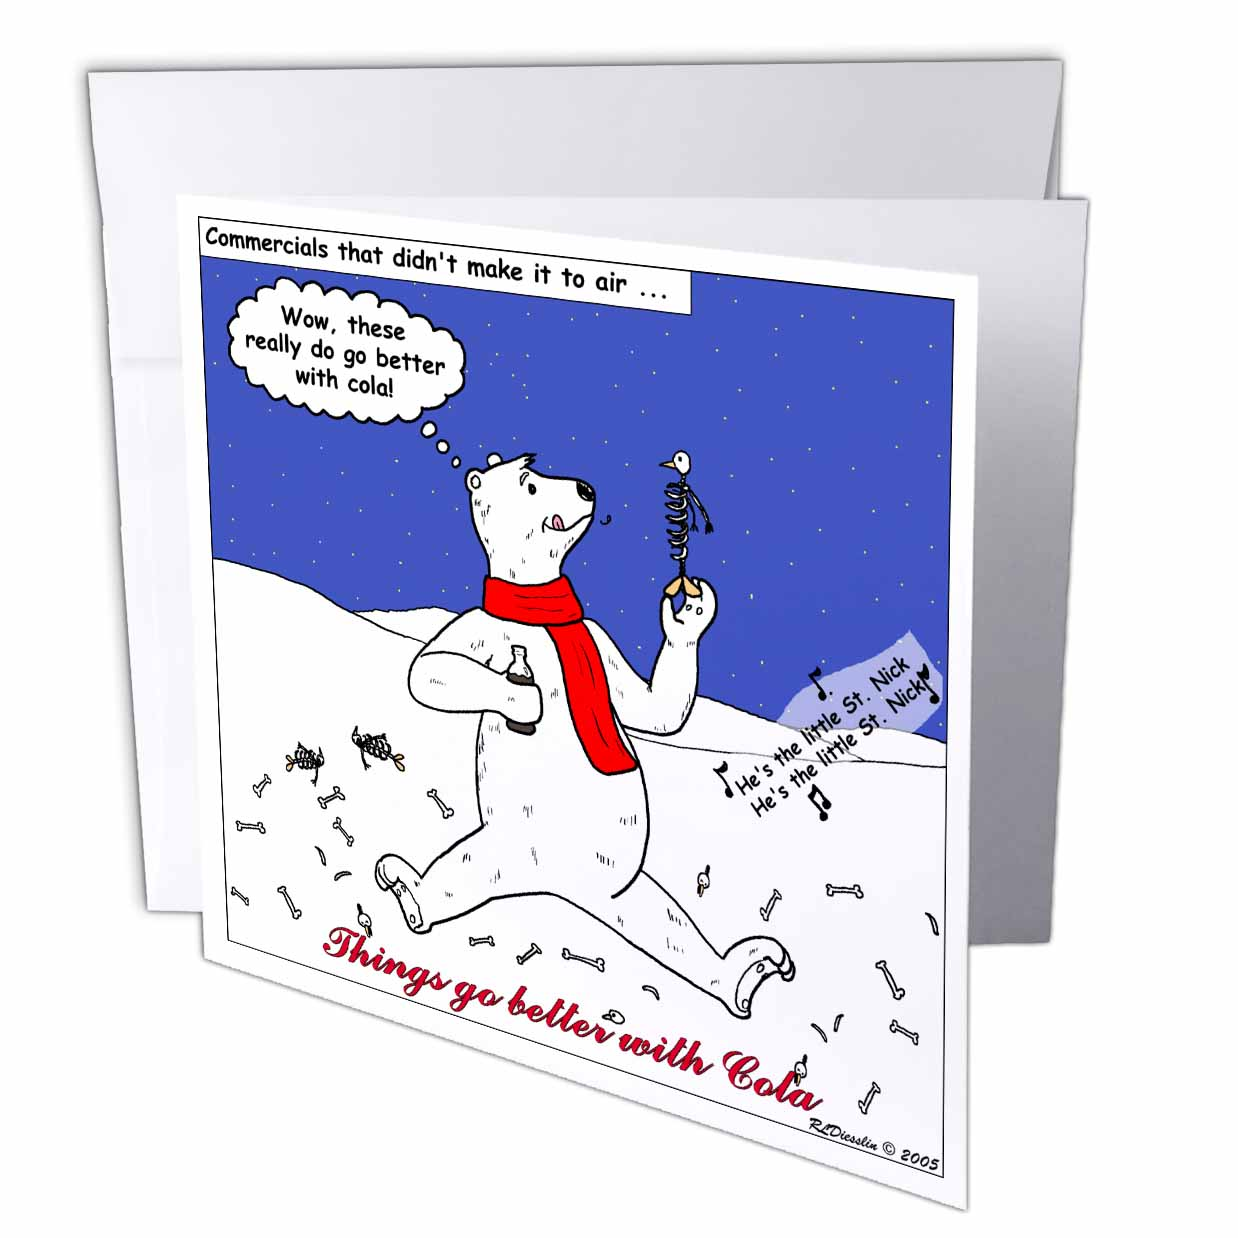 3dRose Holiday Commercials that Didnt Make It, Greeting Cards, 6 x 6 inches, set of 12